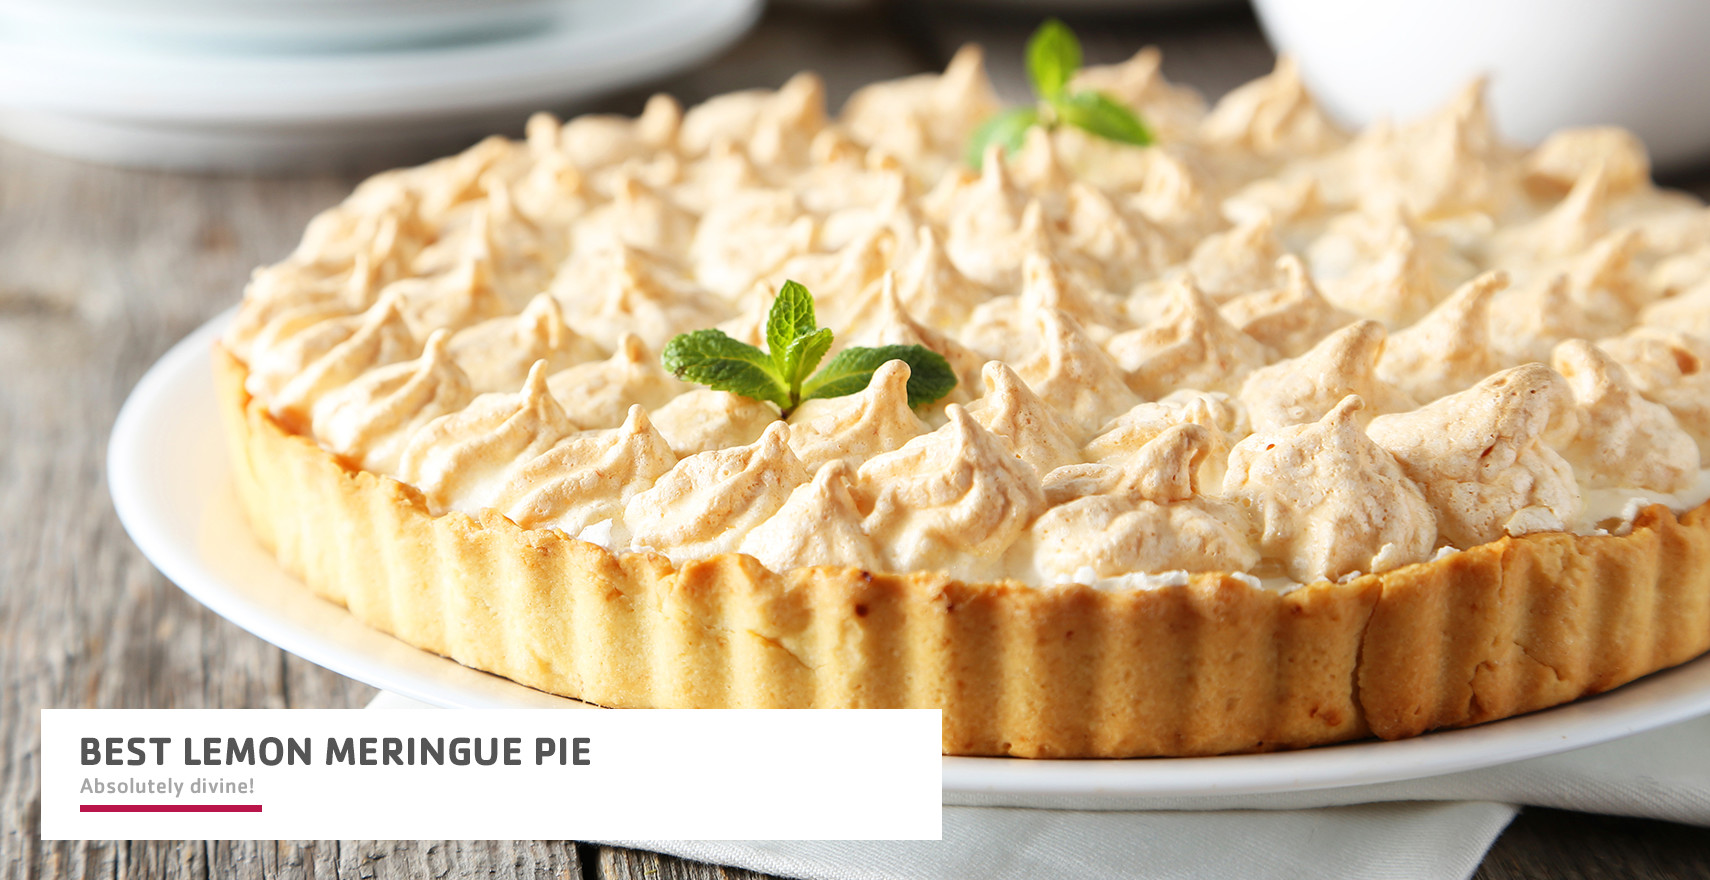 Dessert-Best Lemon Meringue Pie.jpg